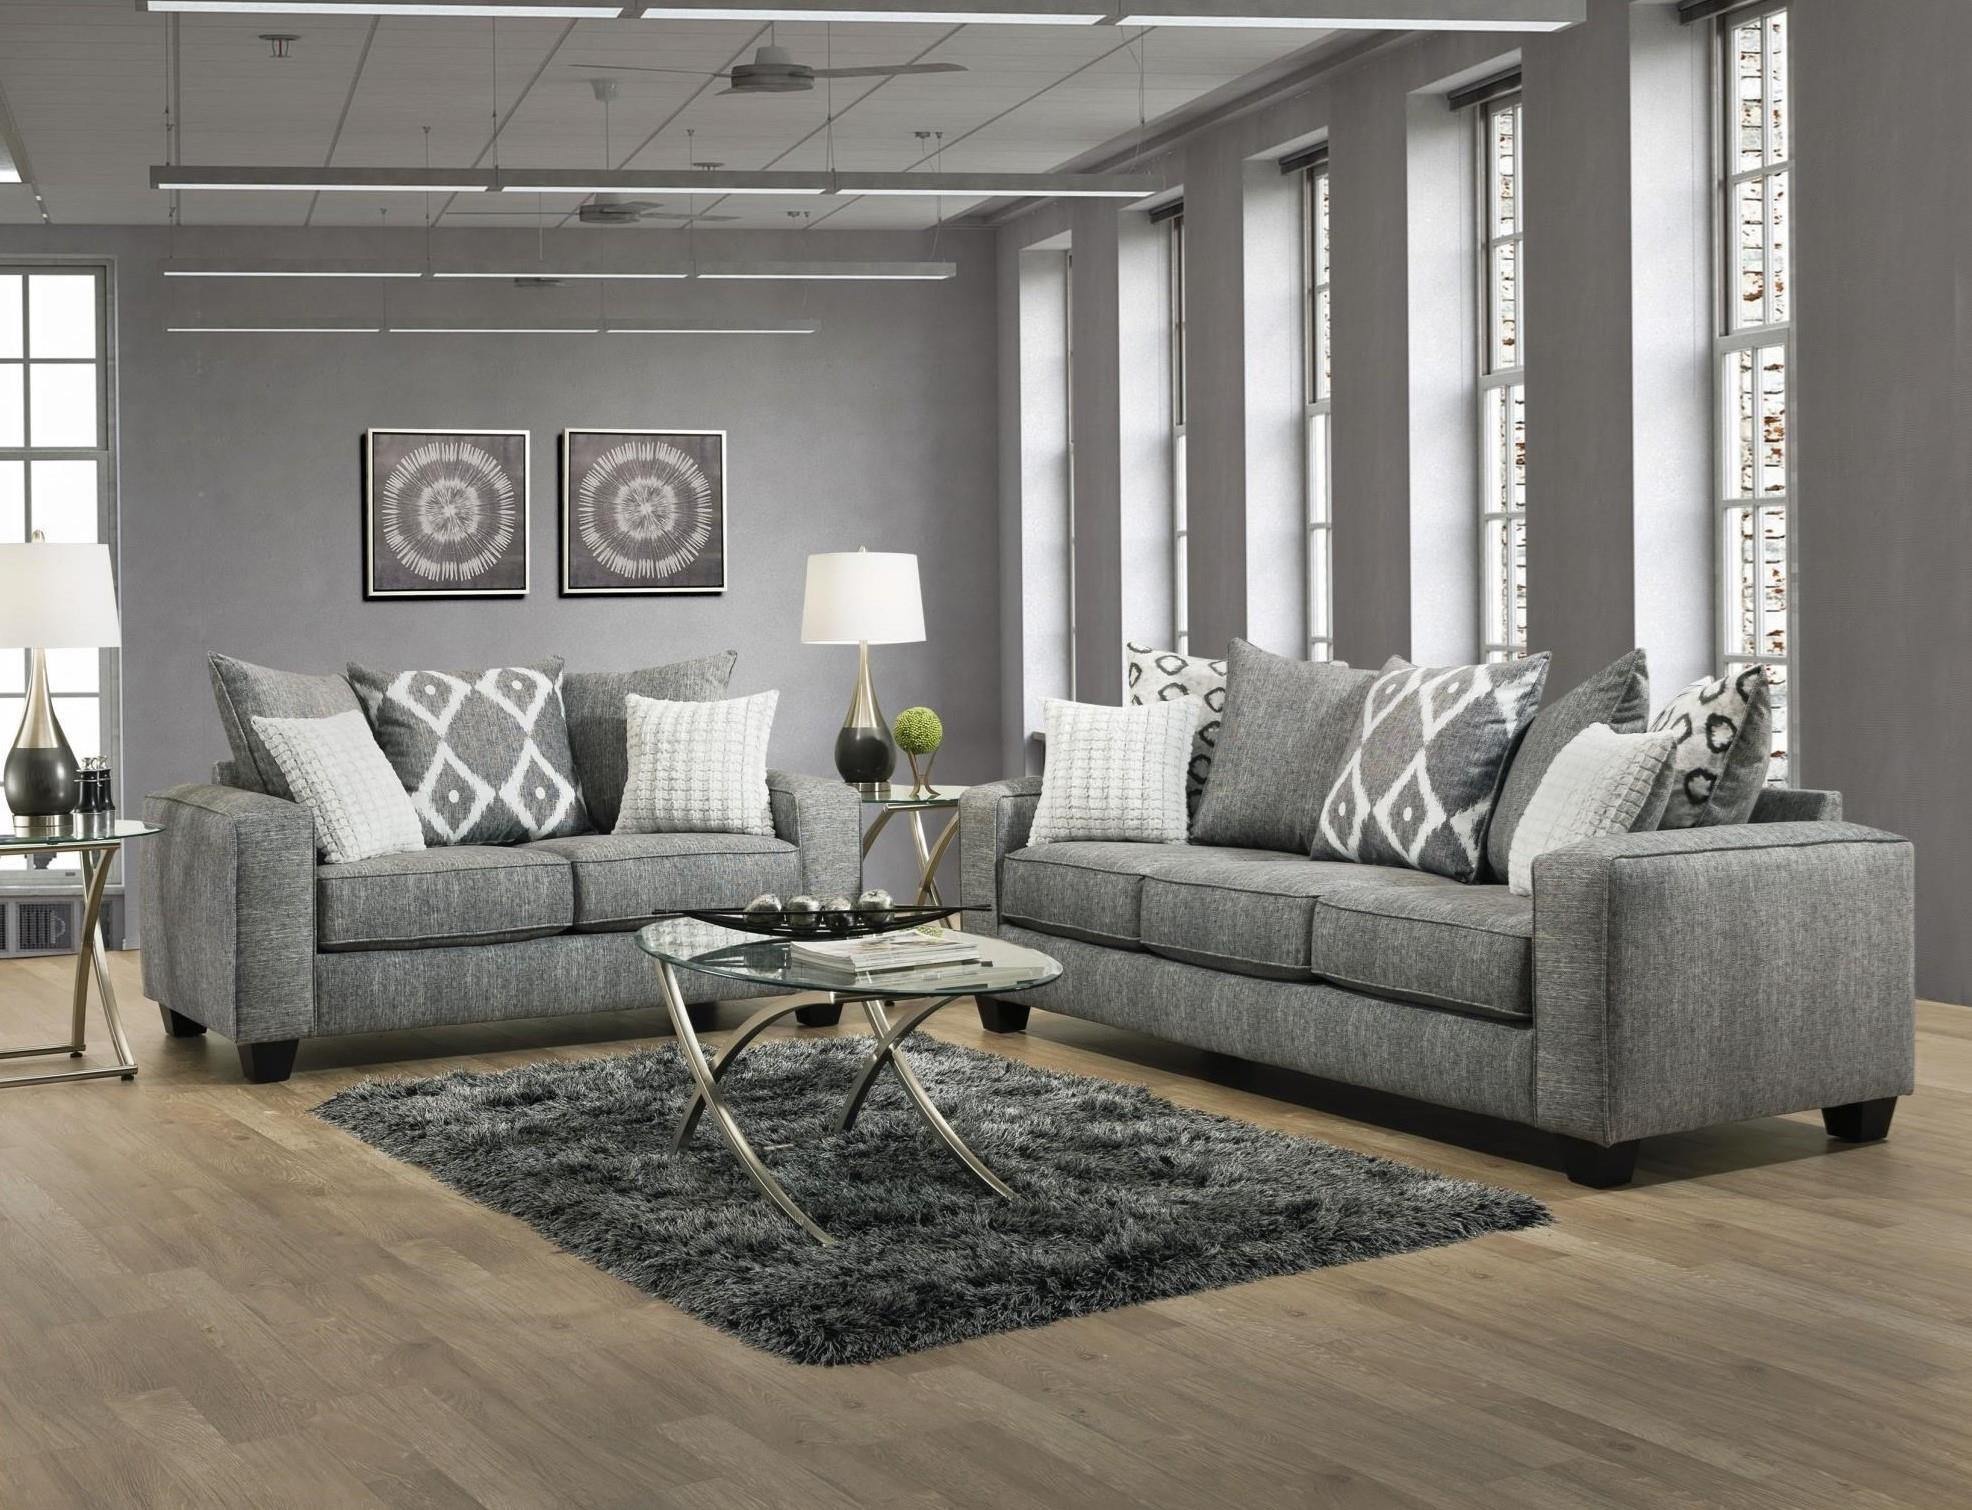 Stonewash Sofa & Loveseat